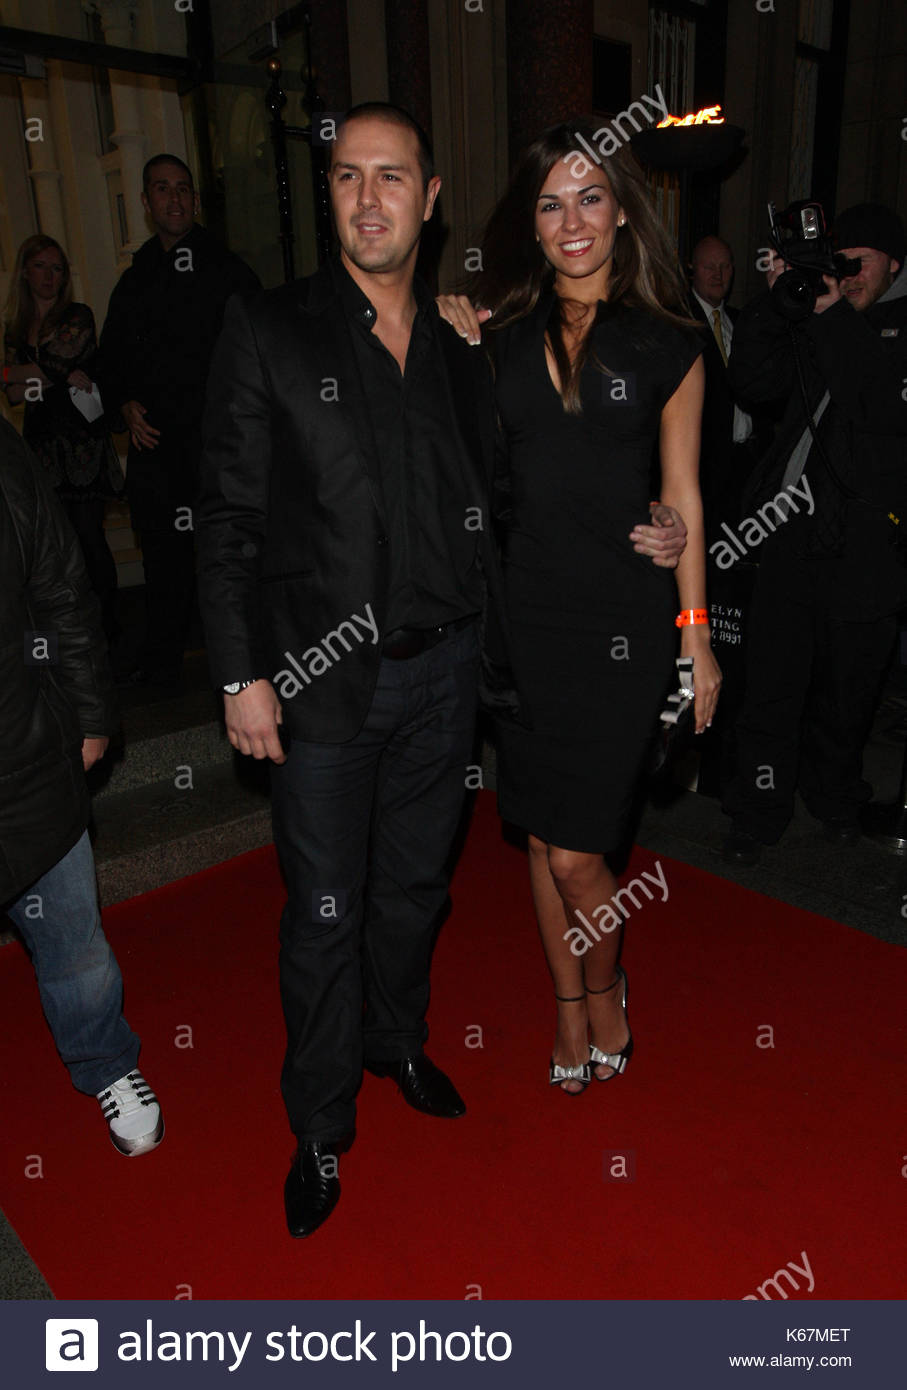 Paddy McGuinness. Celebs at the opening night of the Queen musical 'We Will Rock You' at the Palace Theatre - Stock Image